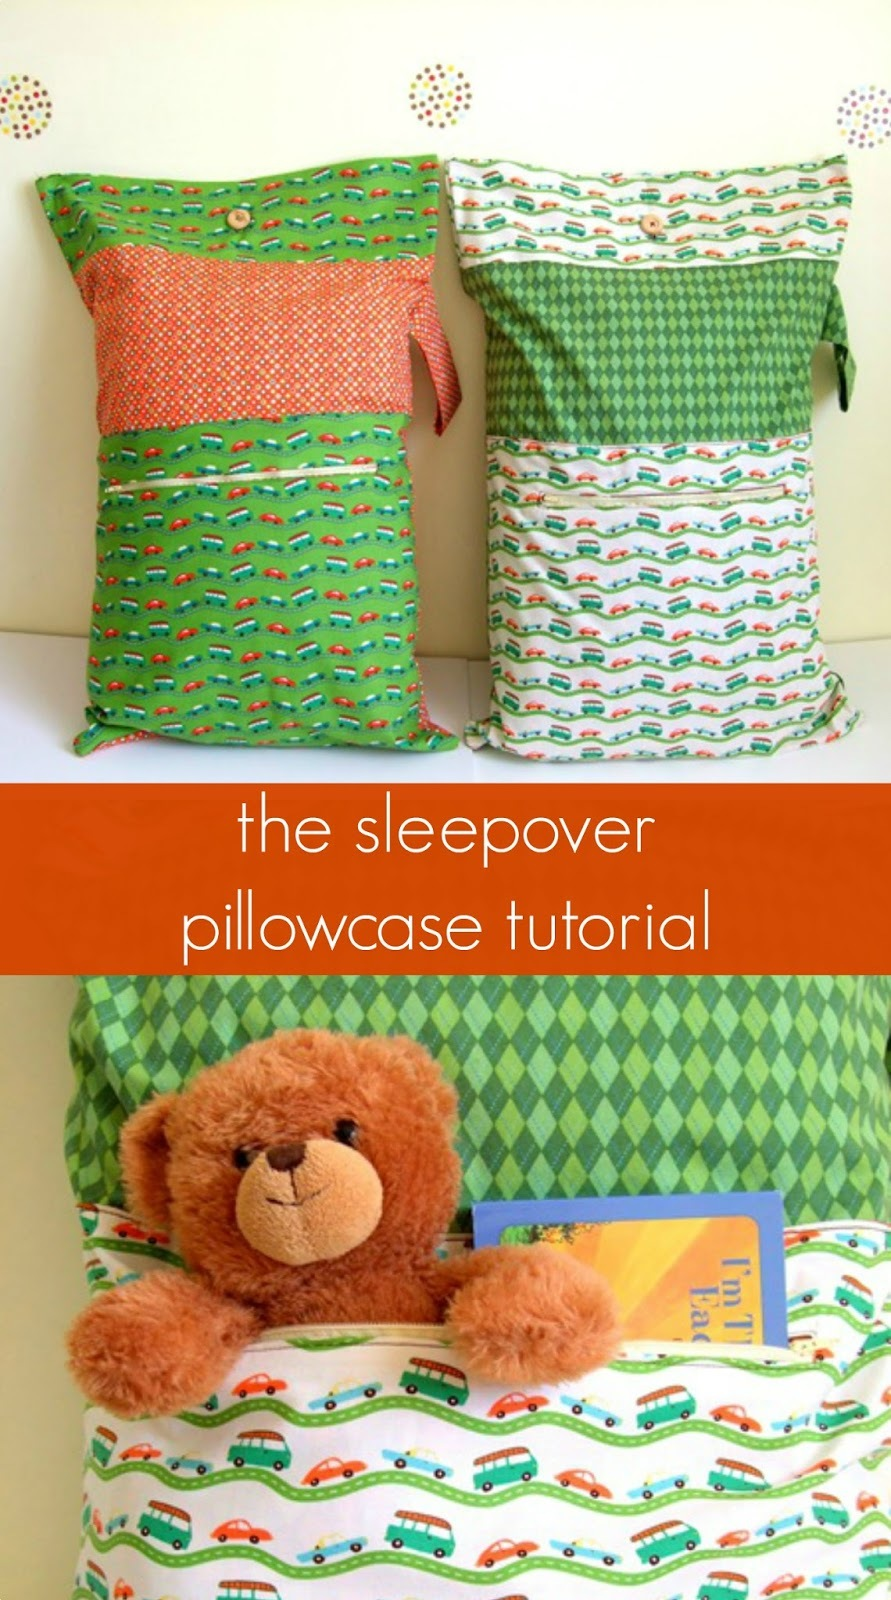 Sleepover Pillowcase Tutorial